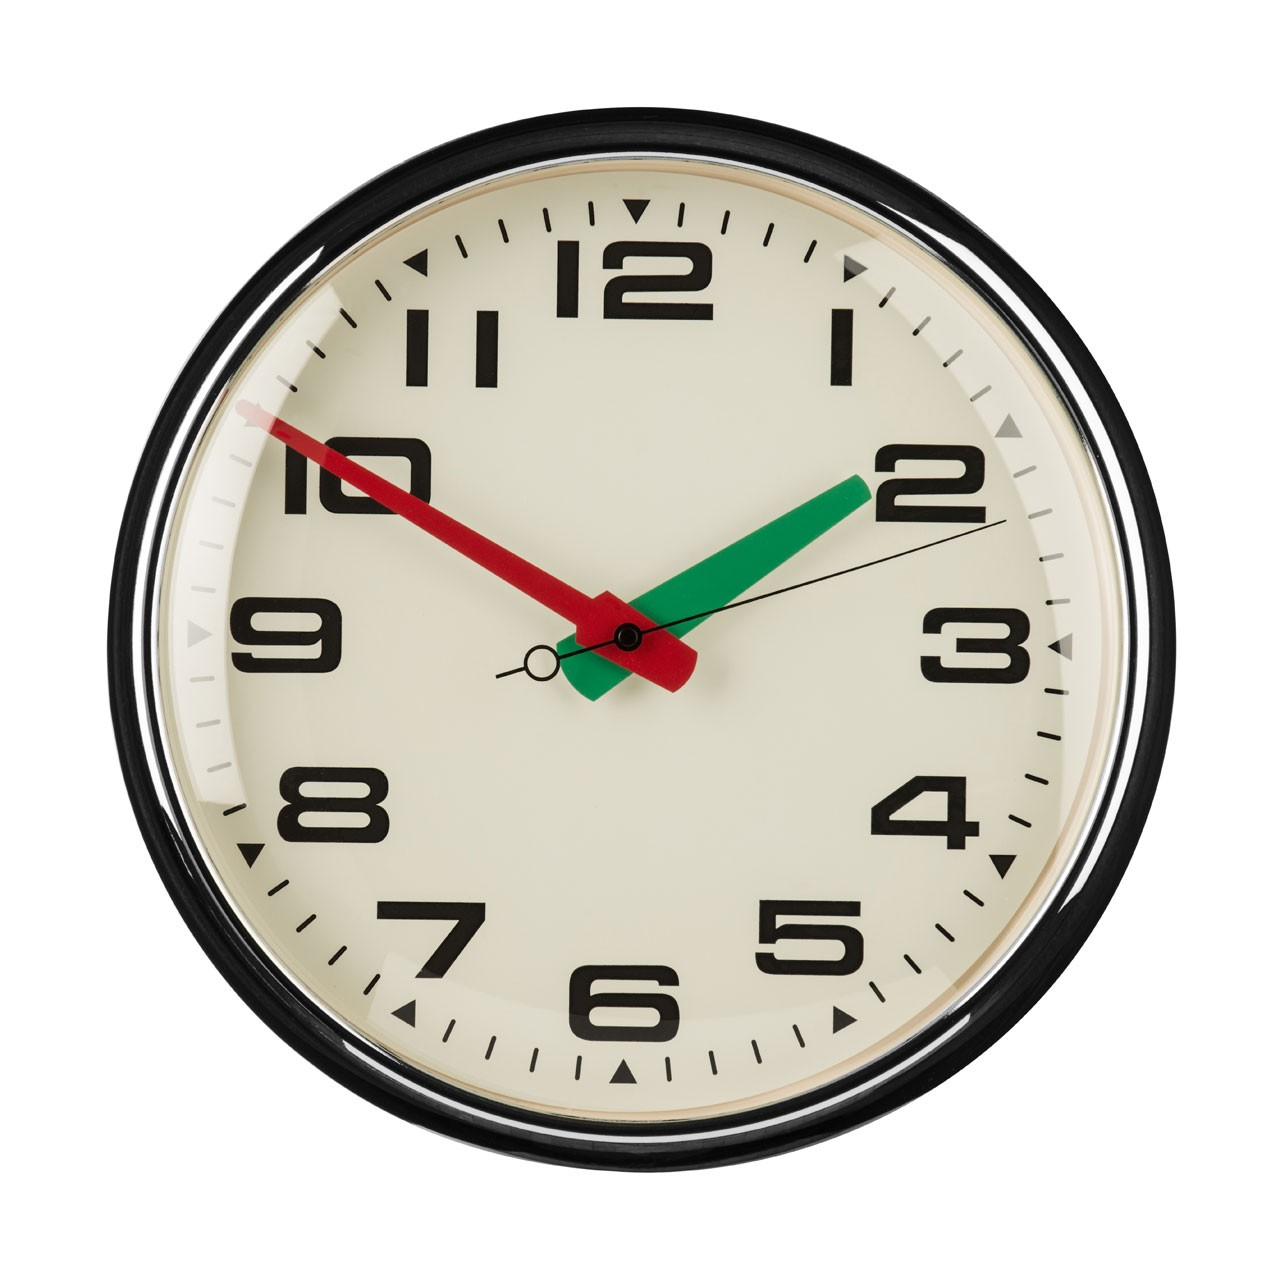 Prime Furnishing Metal Wall Clock - Red/Green